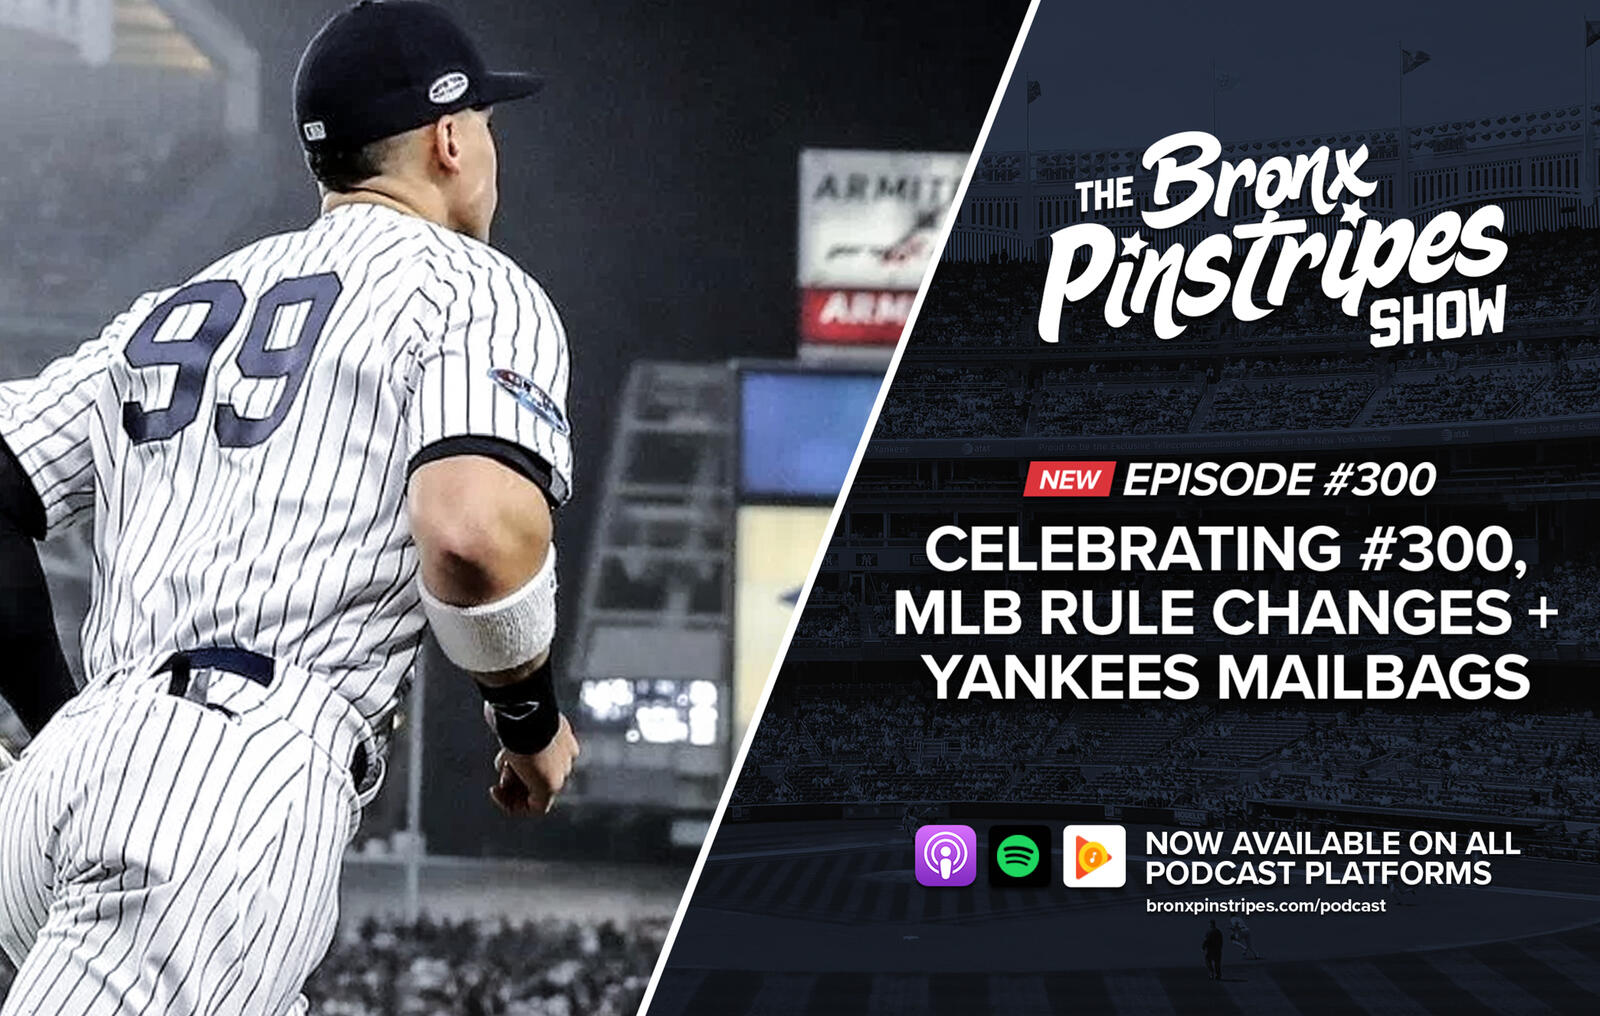 ac48c192602 The Bronx Pinstripes Show - Yankees MLB Podcast (unofficial) → Podbay